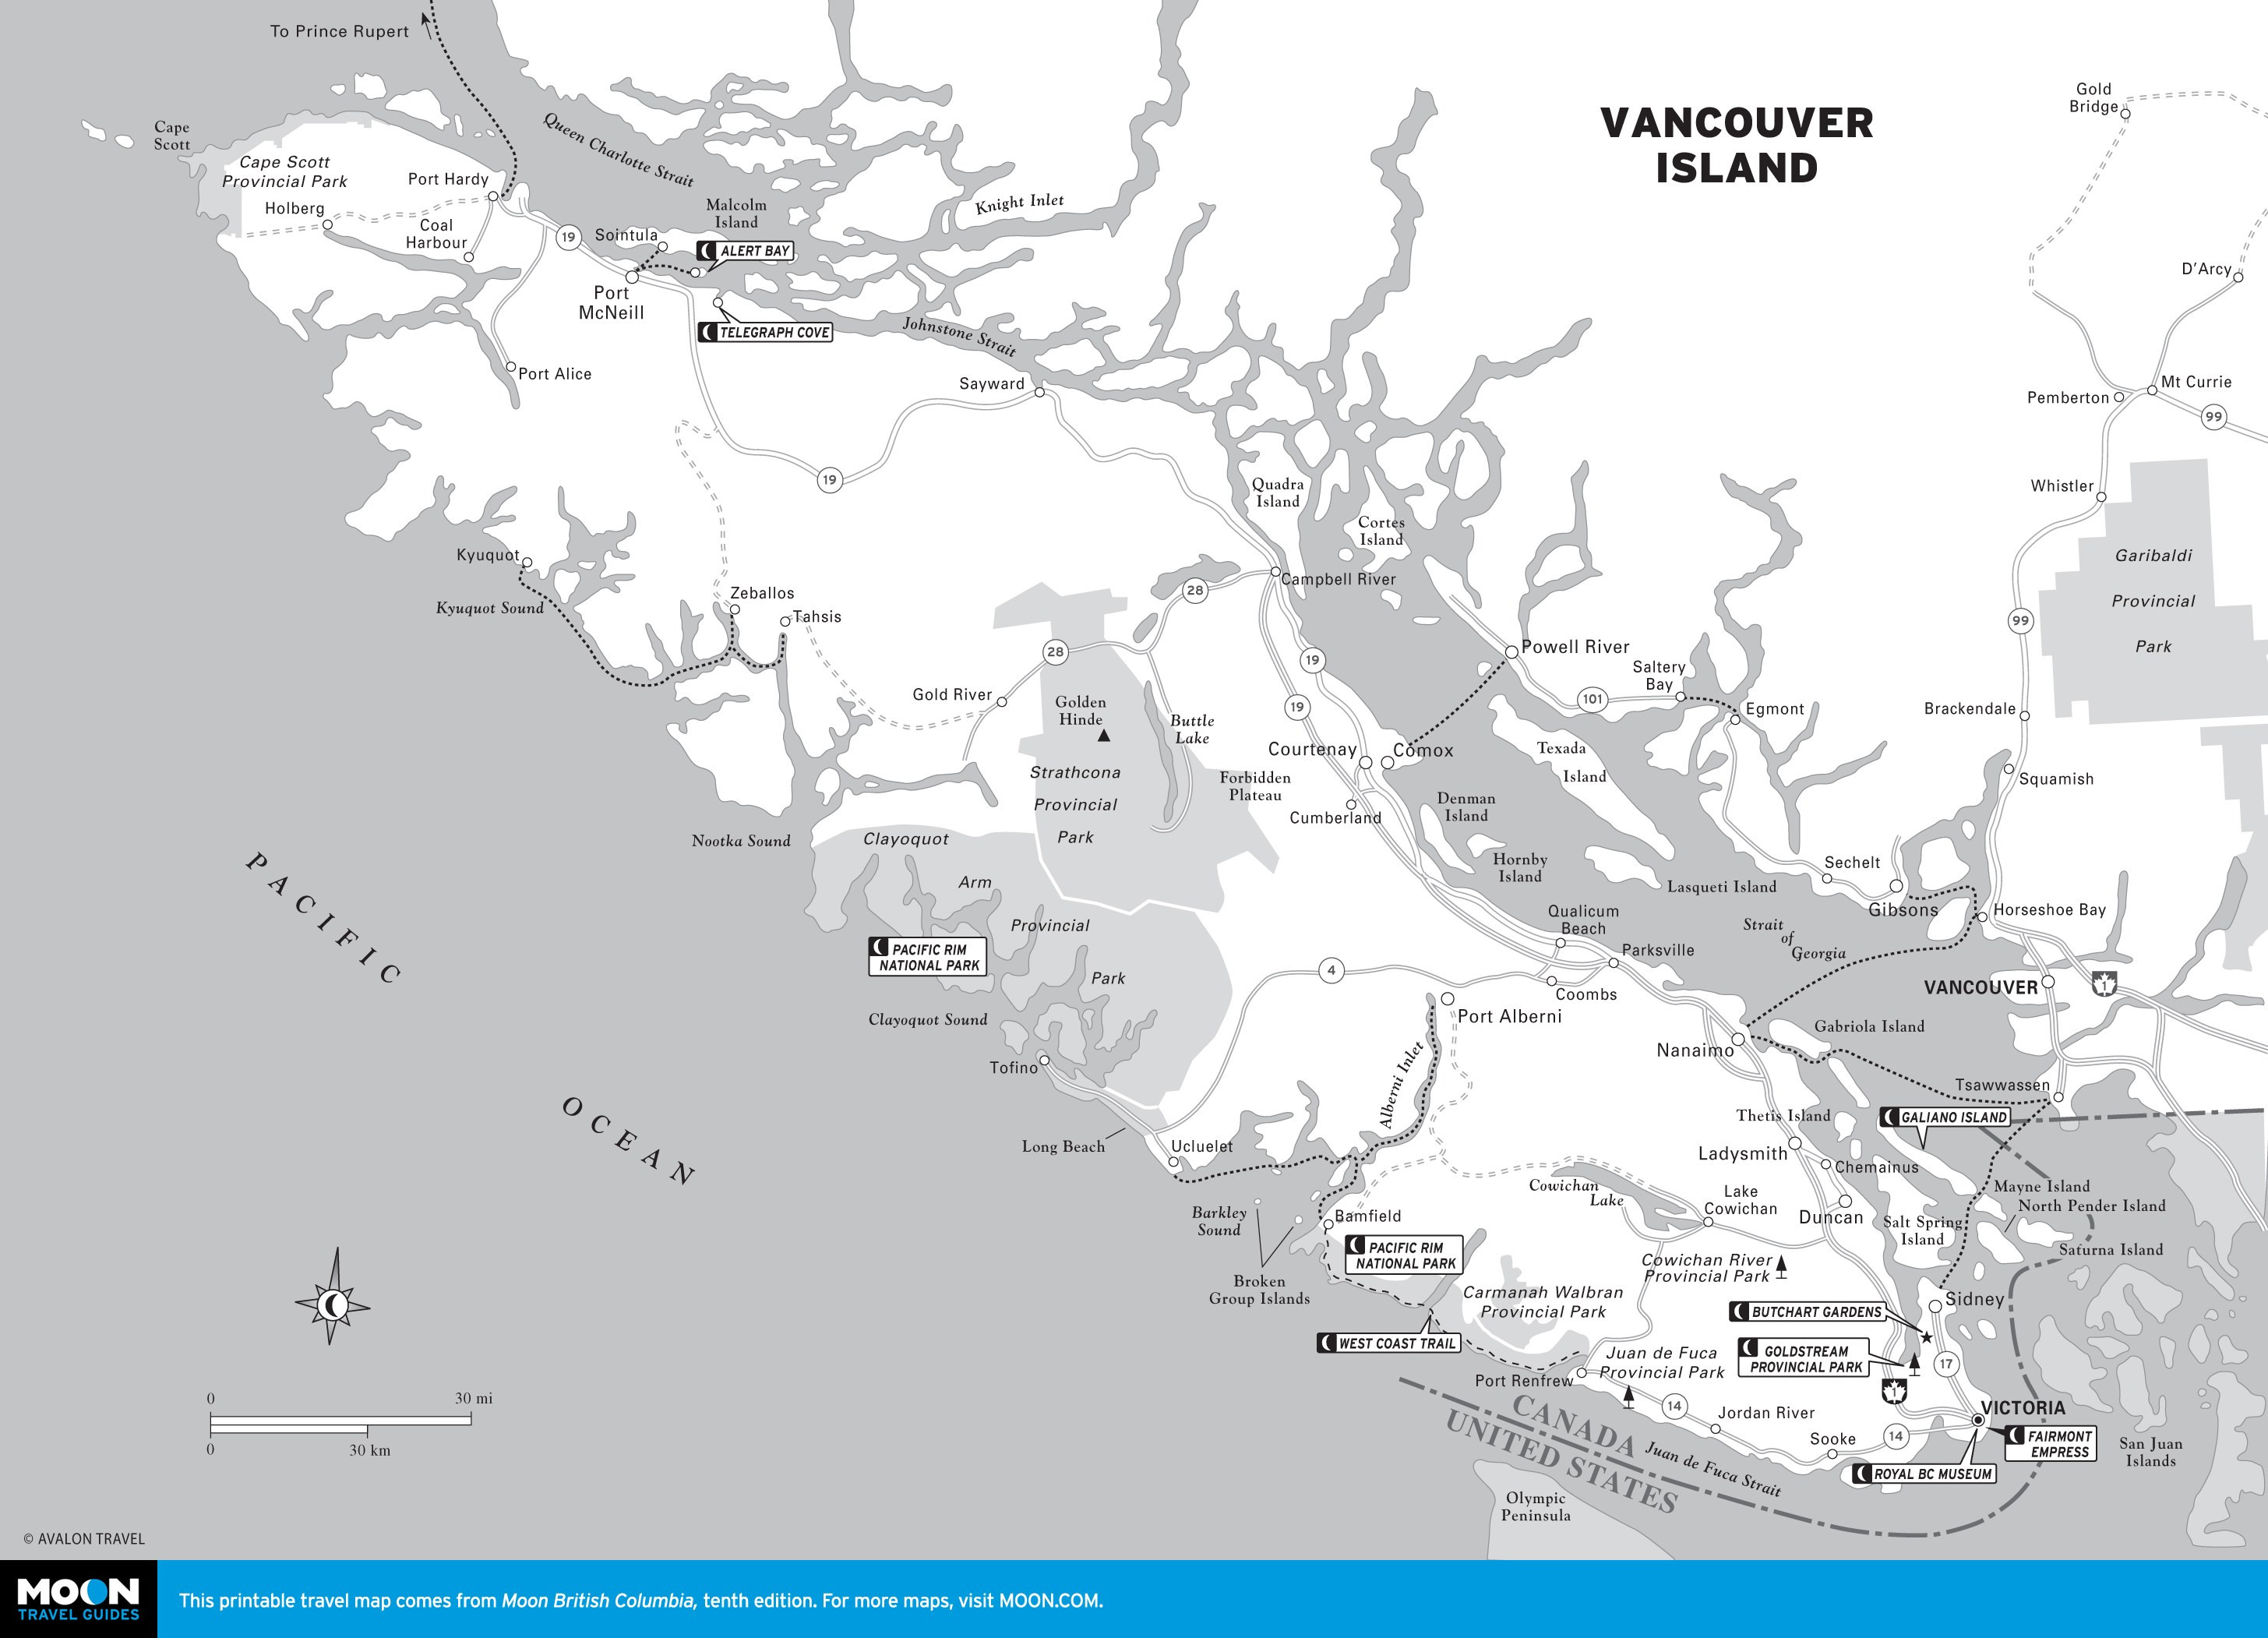 Printable Travel Maps of British Columbia